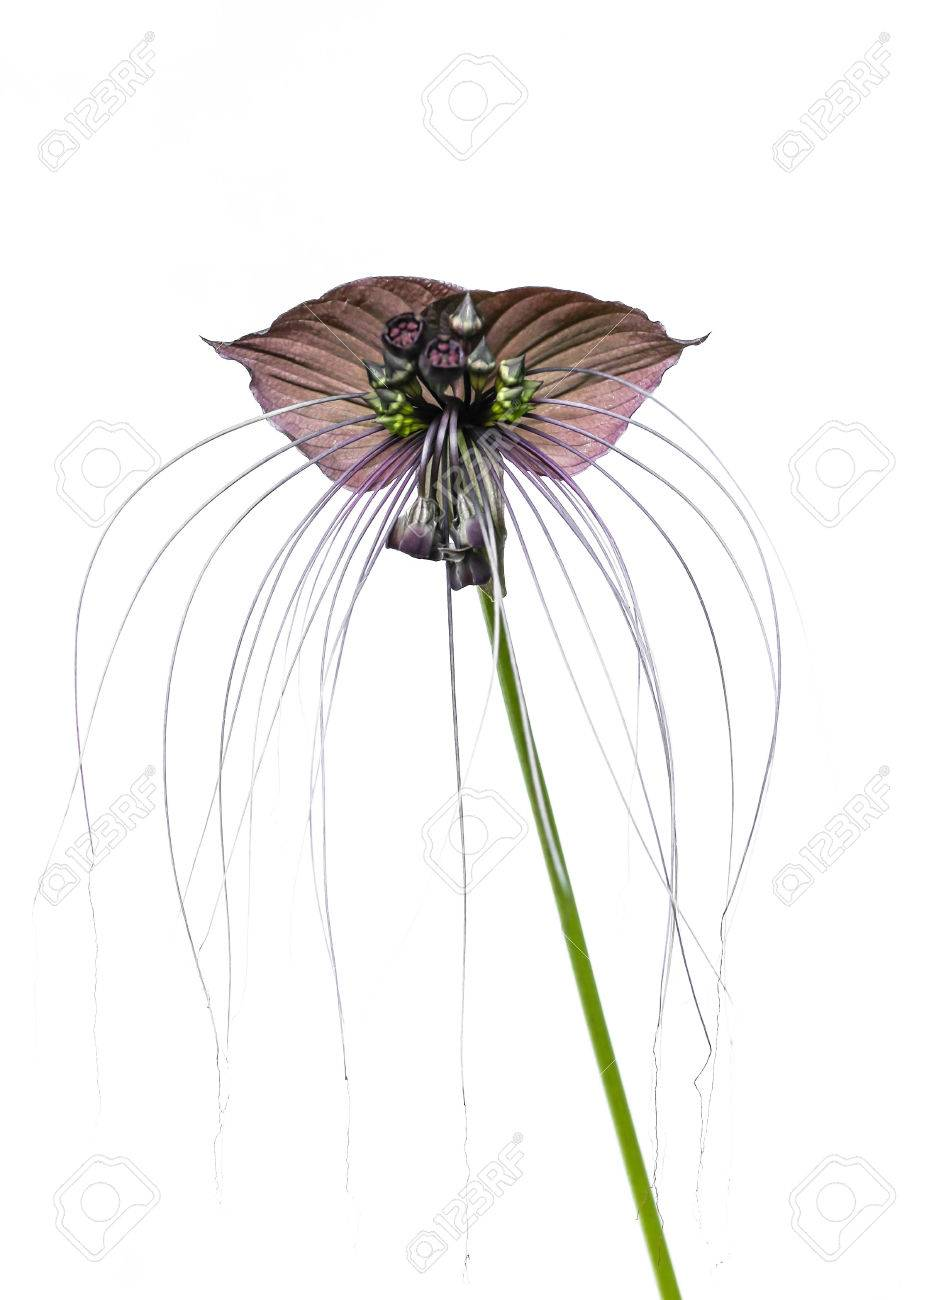 Tacca Chantieri Var Macrantha Black Bat Flower Isolated In White